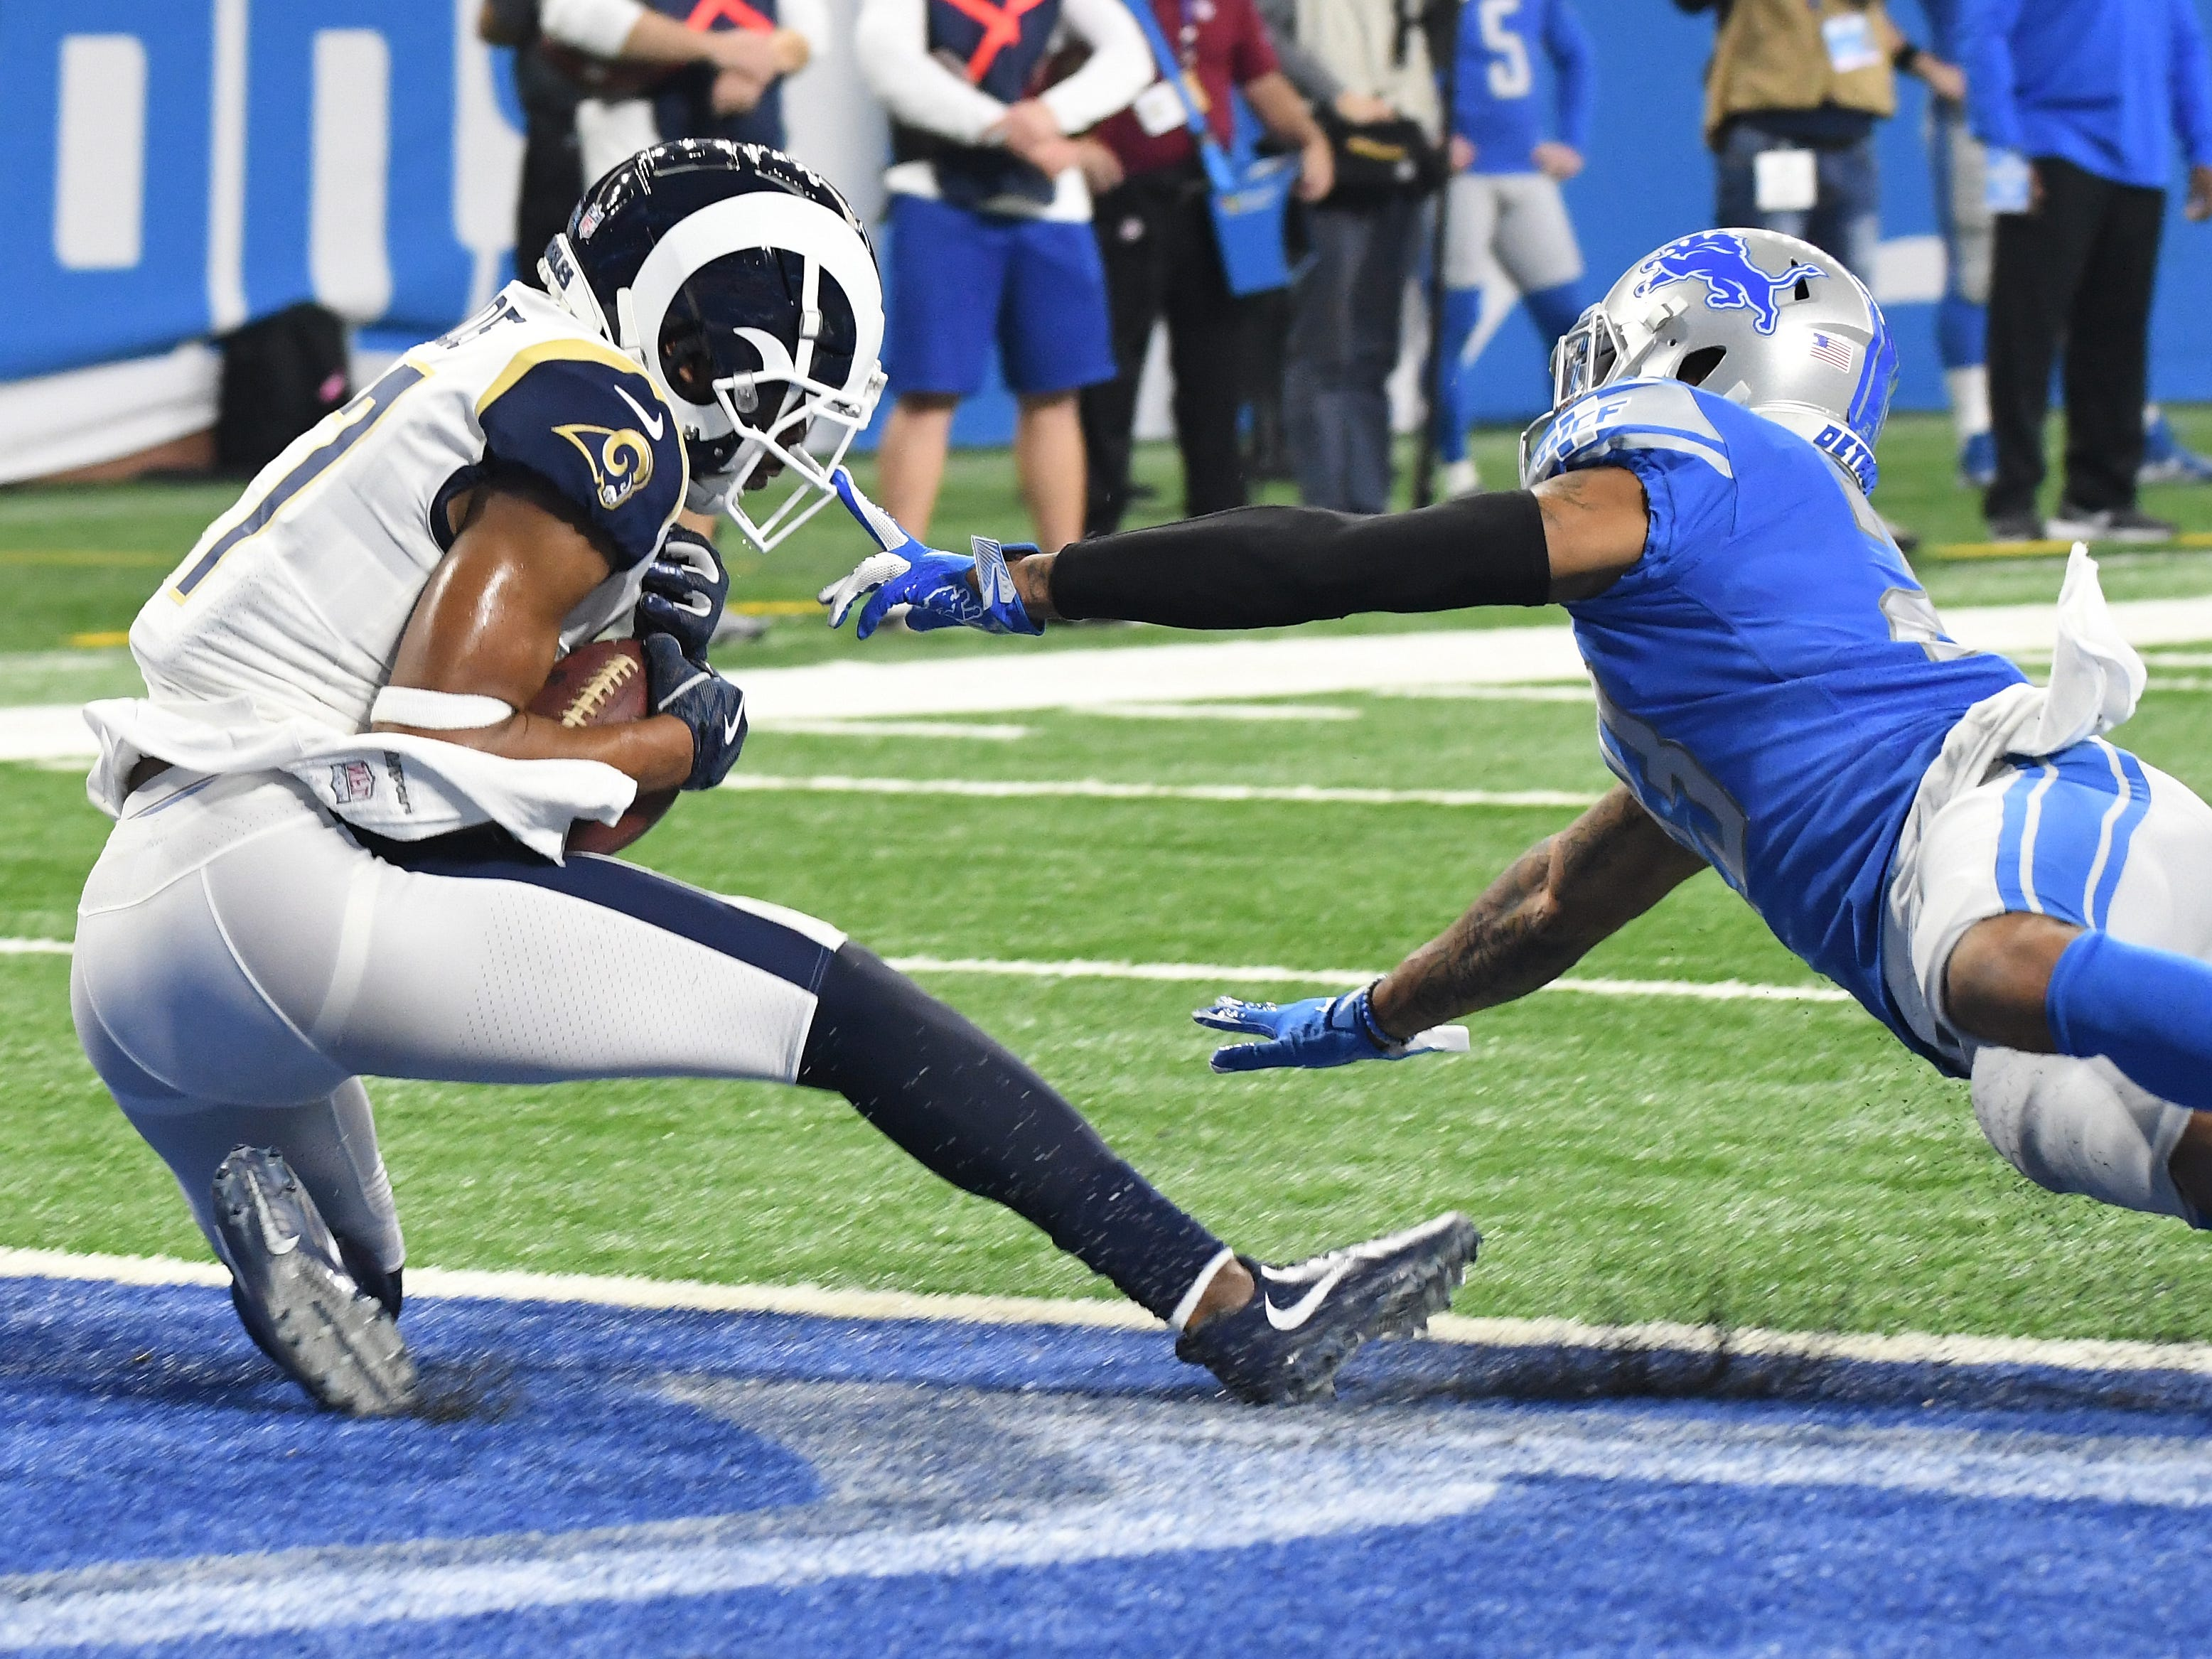 Rams' Robert Woods pulls in a touchdown reception under Lions' Darius Slay in the second quarter.